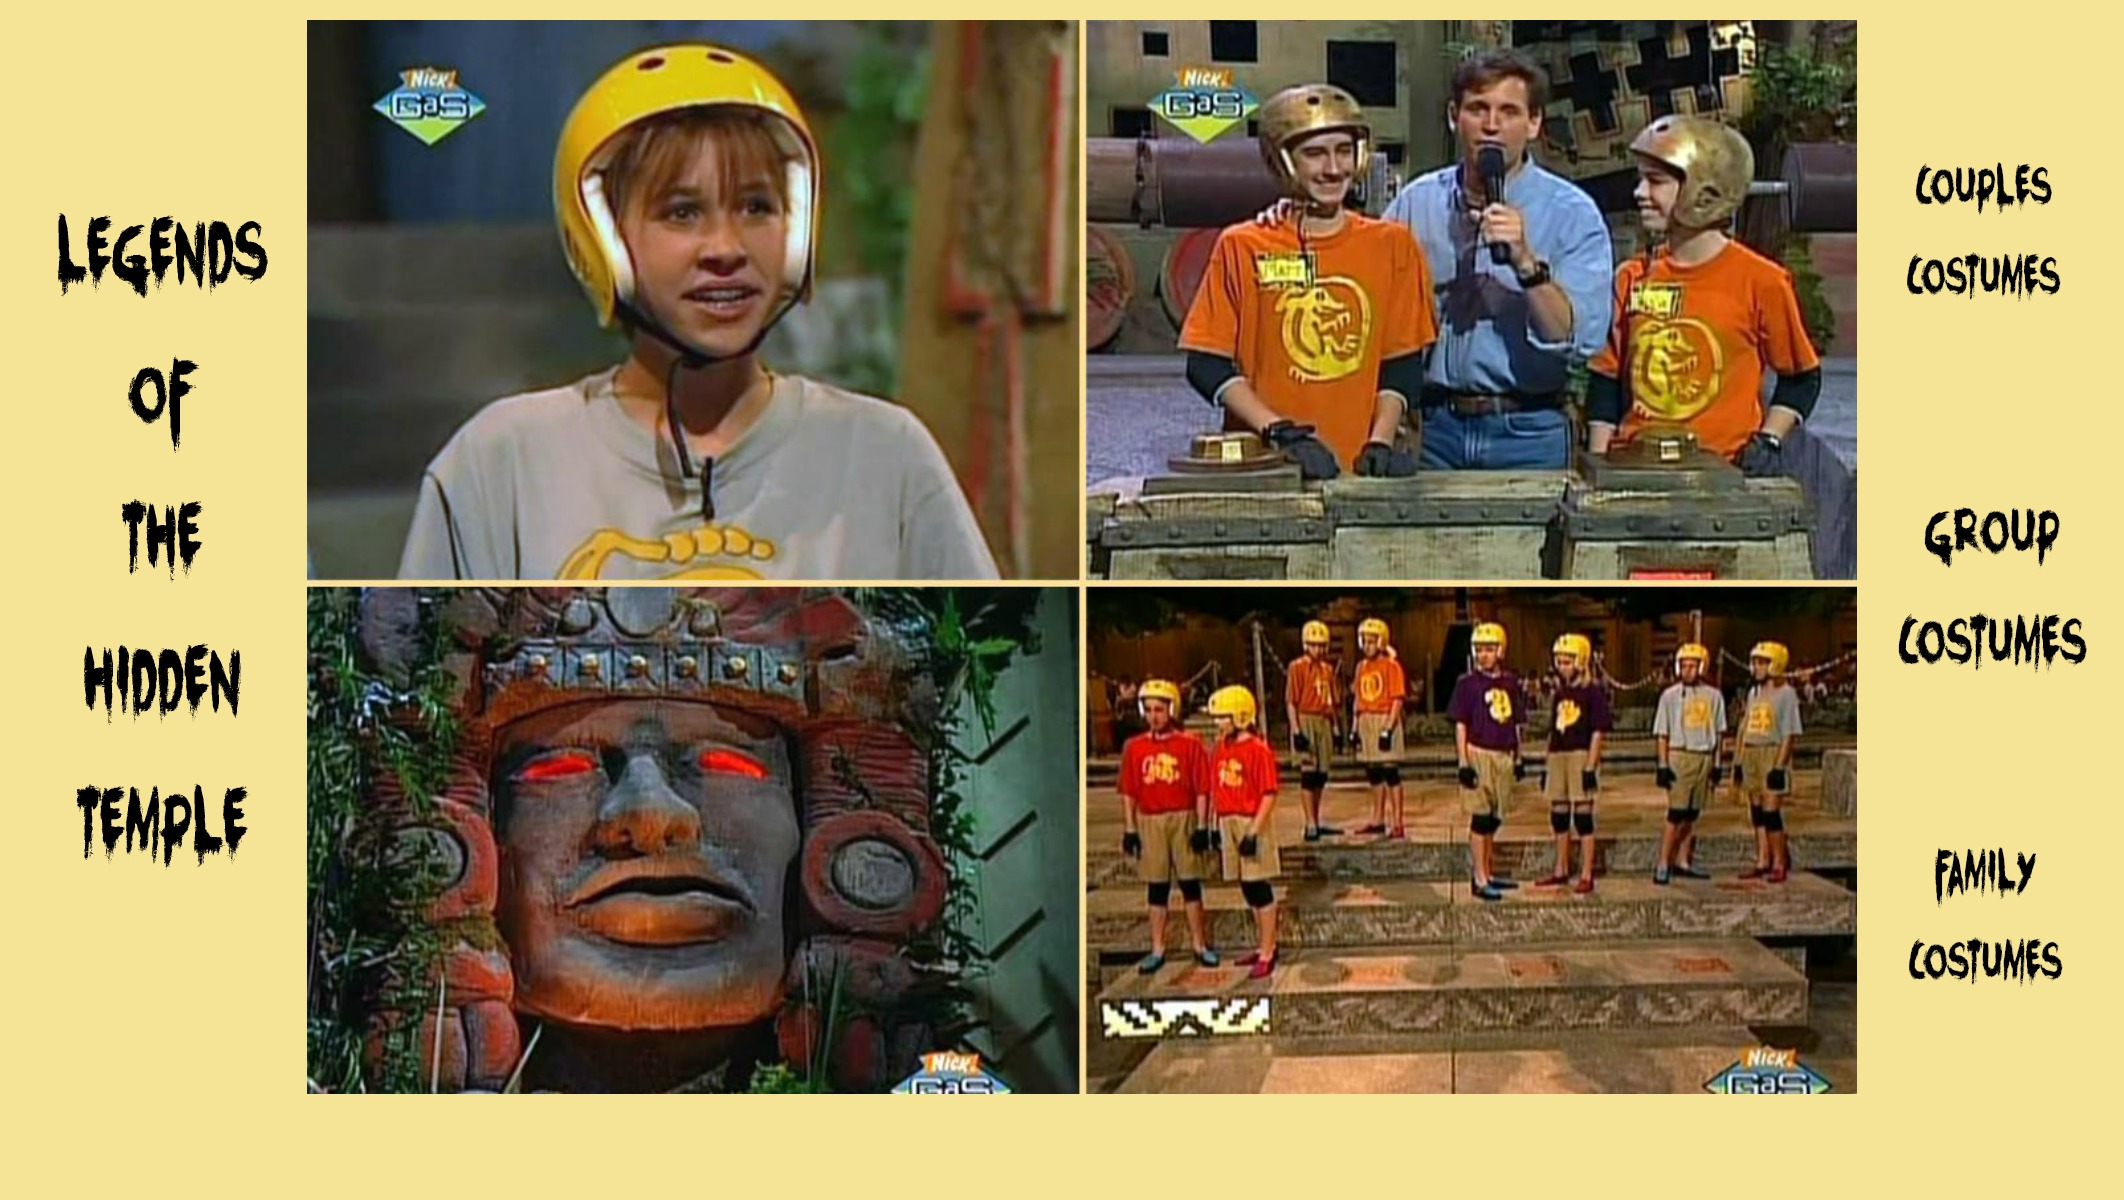 Throwback Halloween Costumes Legends of the Hidden Temple Costumes